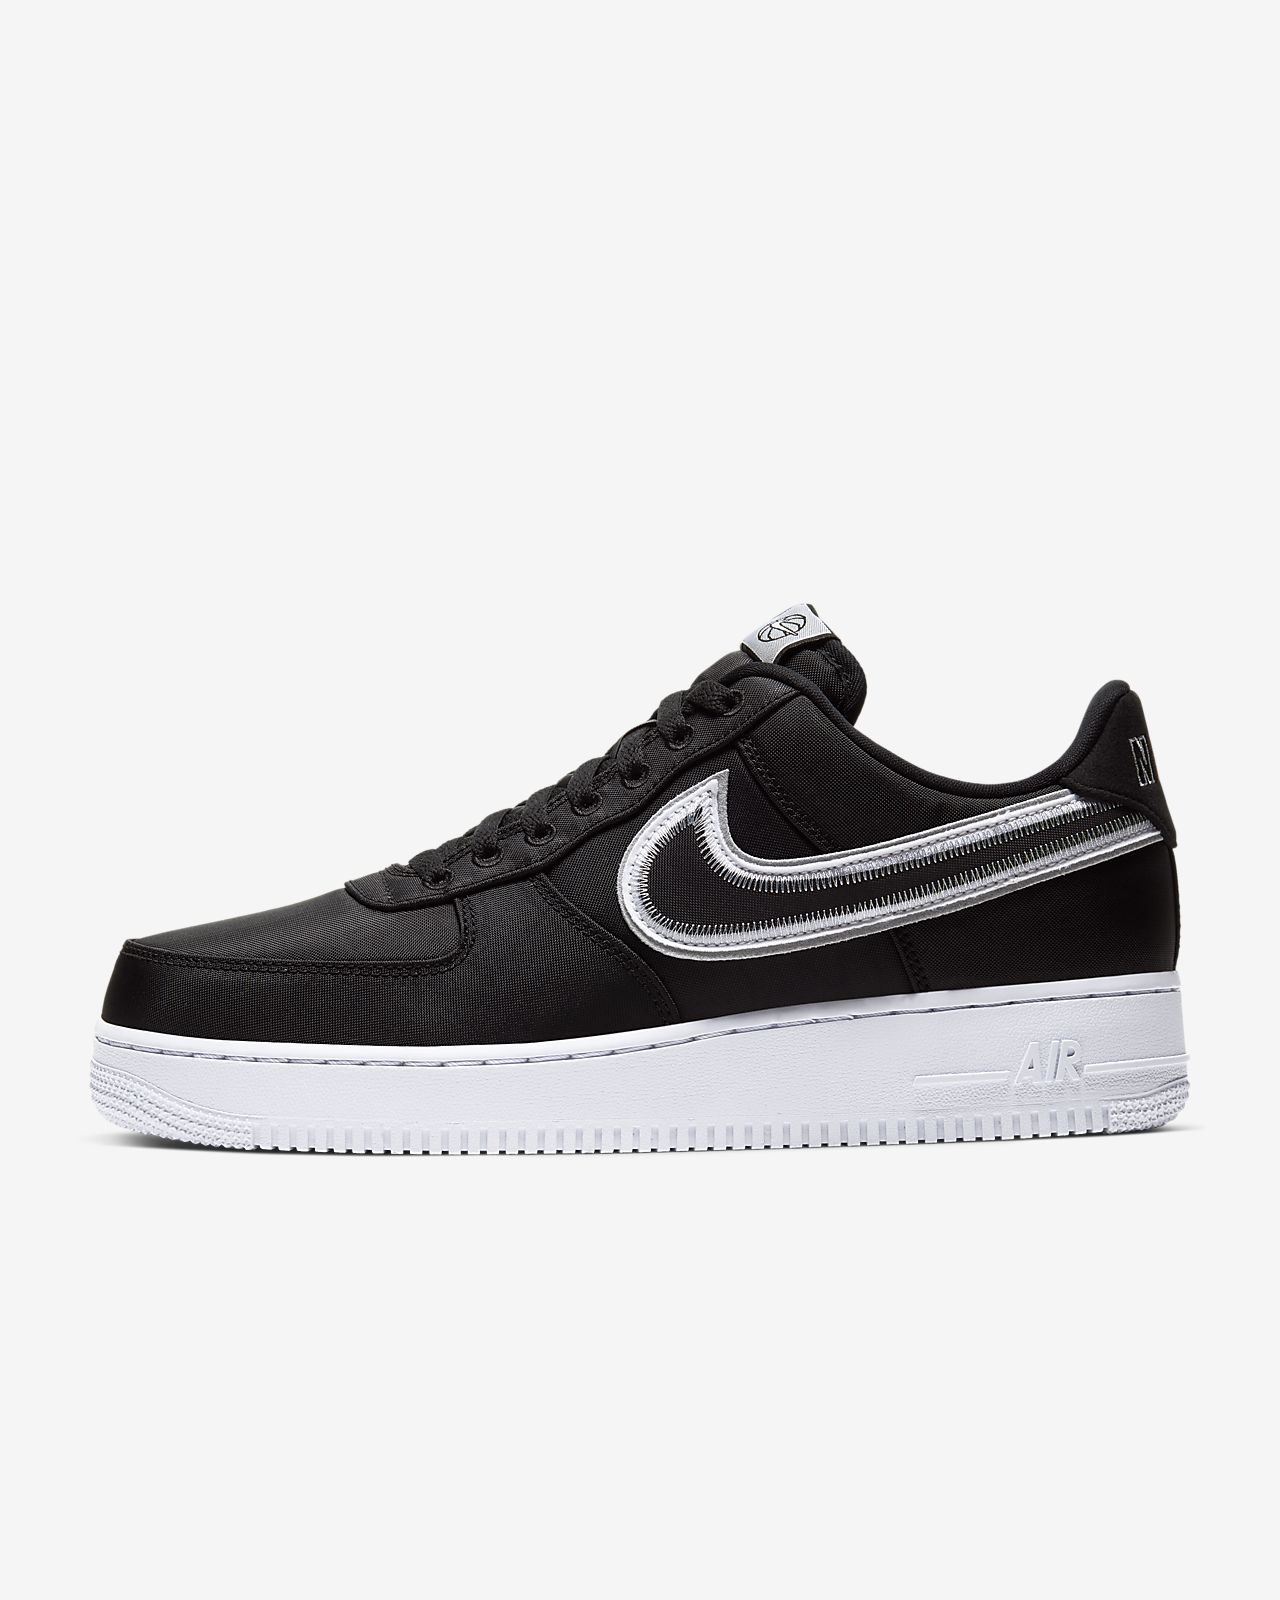 Nike Air Force 1 07 LV8   CK4363 100   White   Sneakers